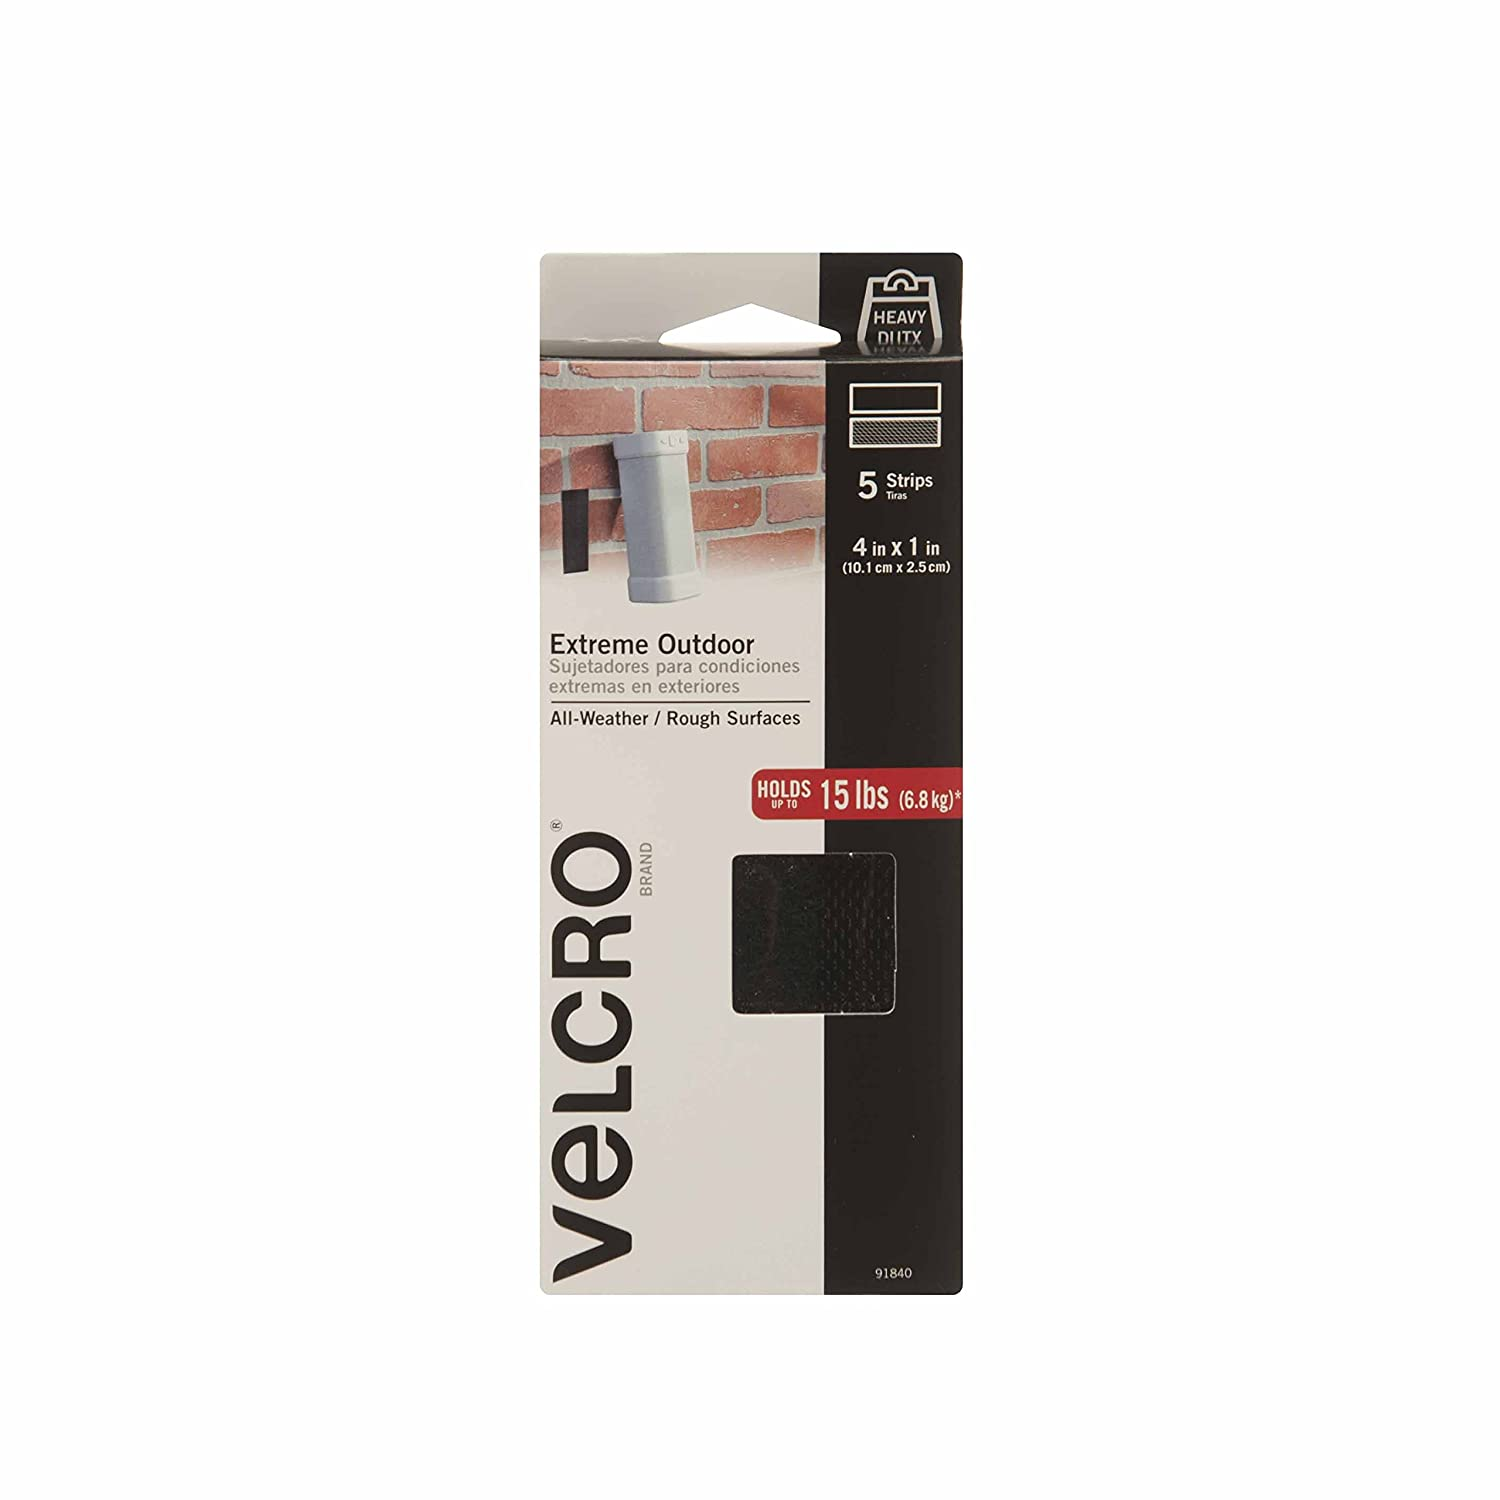 Amazon.com: VELCRO Brand - Industrial Strength Extreme Outdoor | Heavy Duty, Superior Holding Power on Rough Surfaces | 5 Strips | 4in x 1in | Black: Office ...